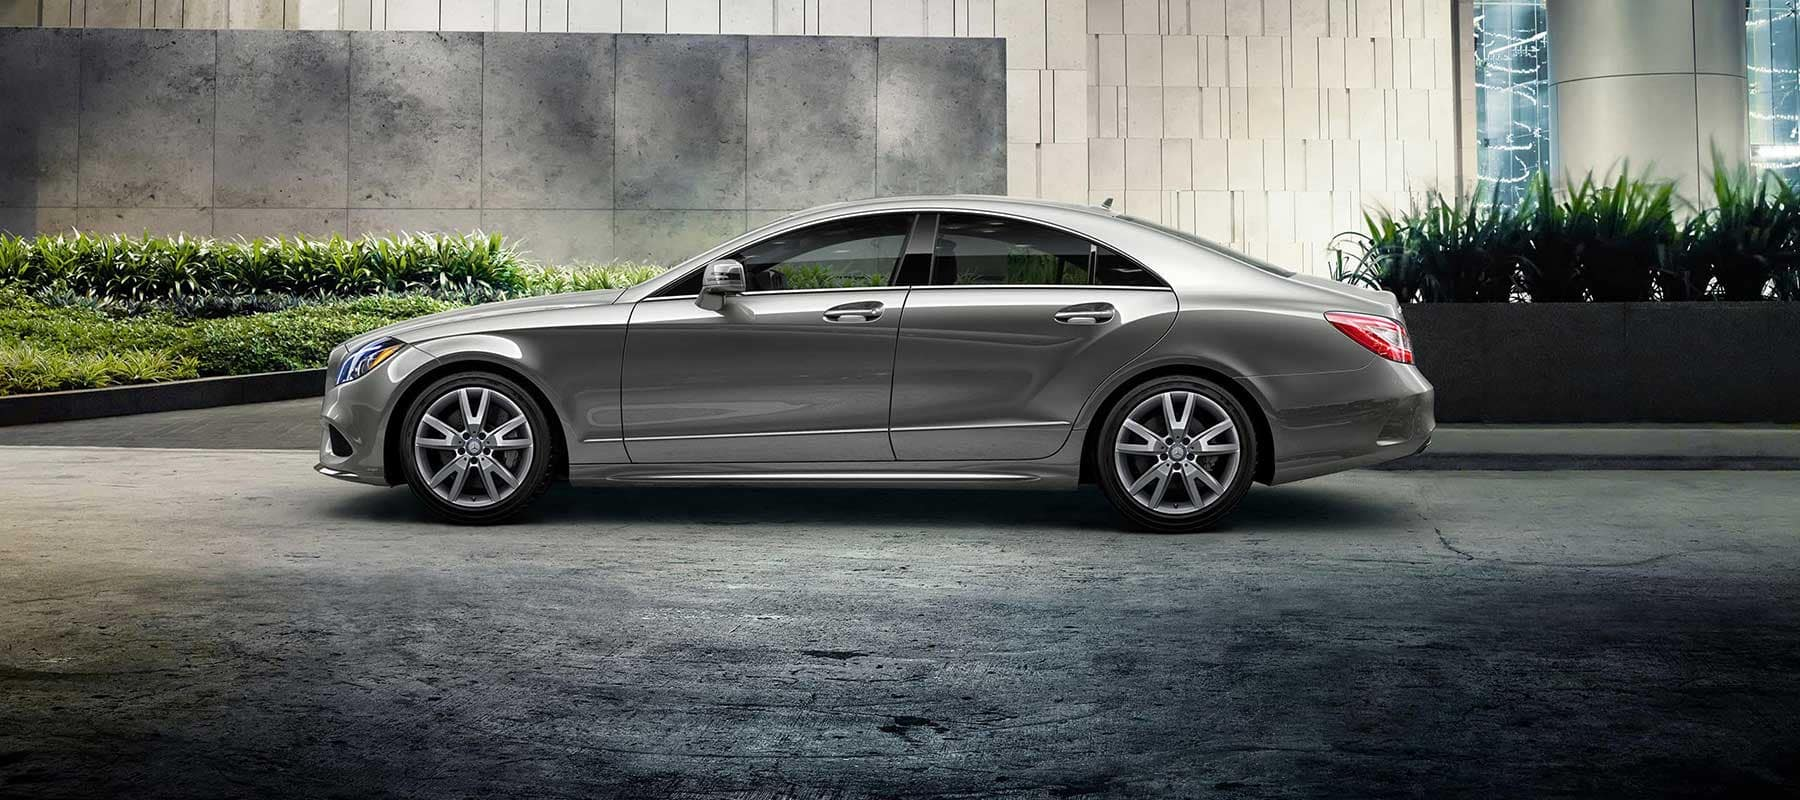 2018 mercedes benz cls 550 coupe info safety design for Mercedes benz 550 cls